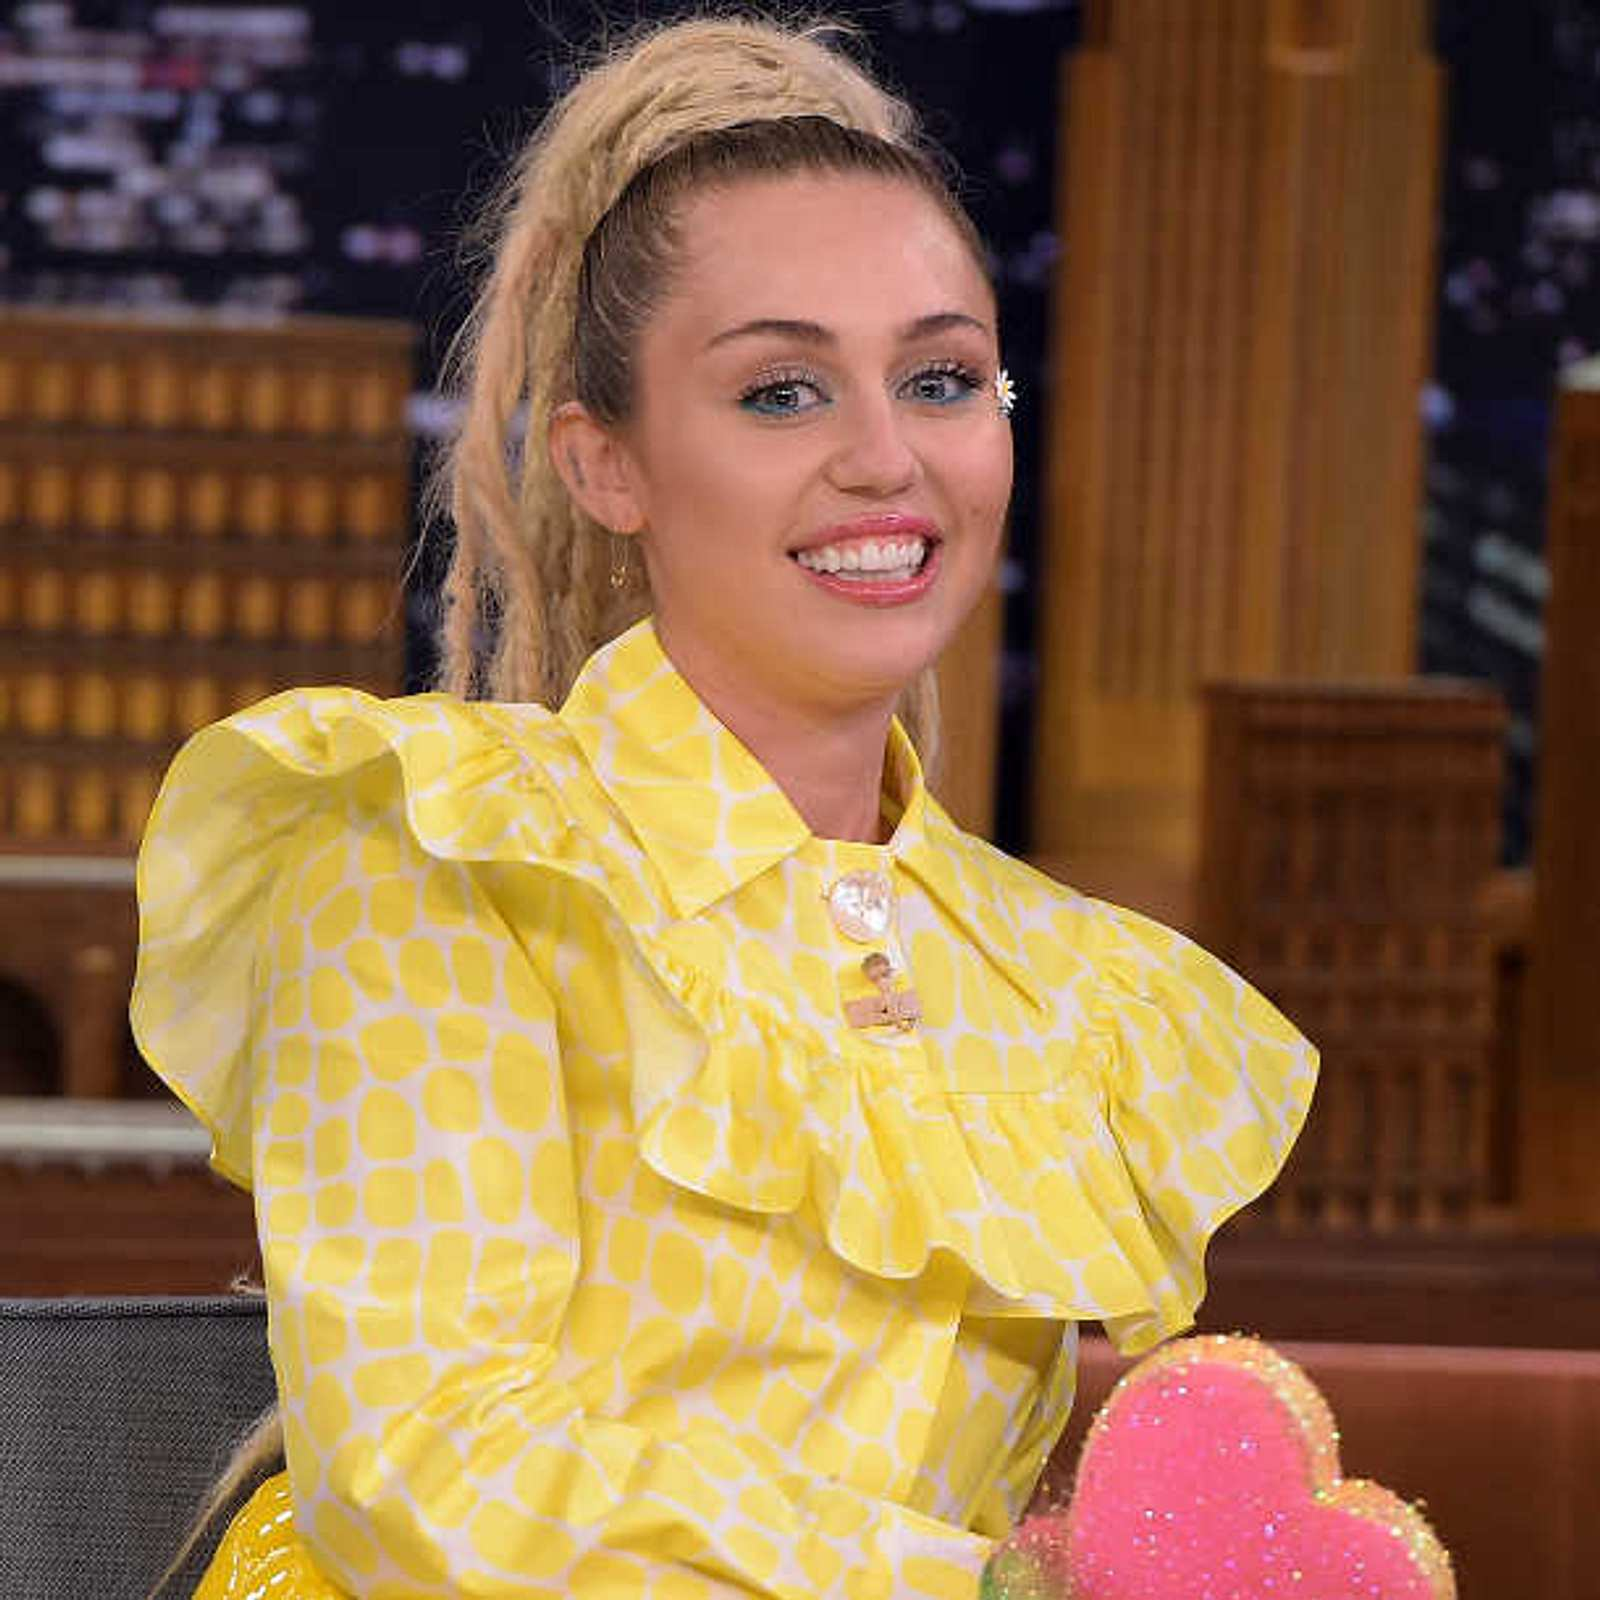 Miley Cyrus plant Nackt-Show mit Flaming Lips! | InTouch